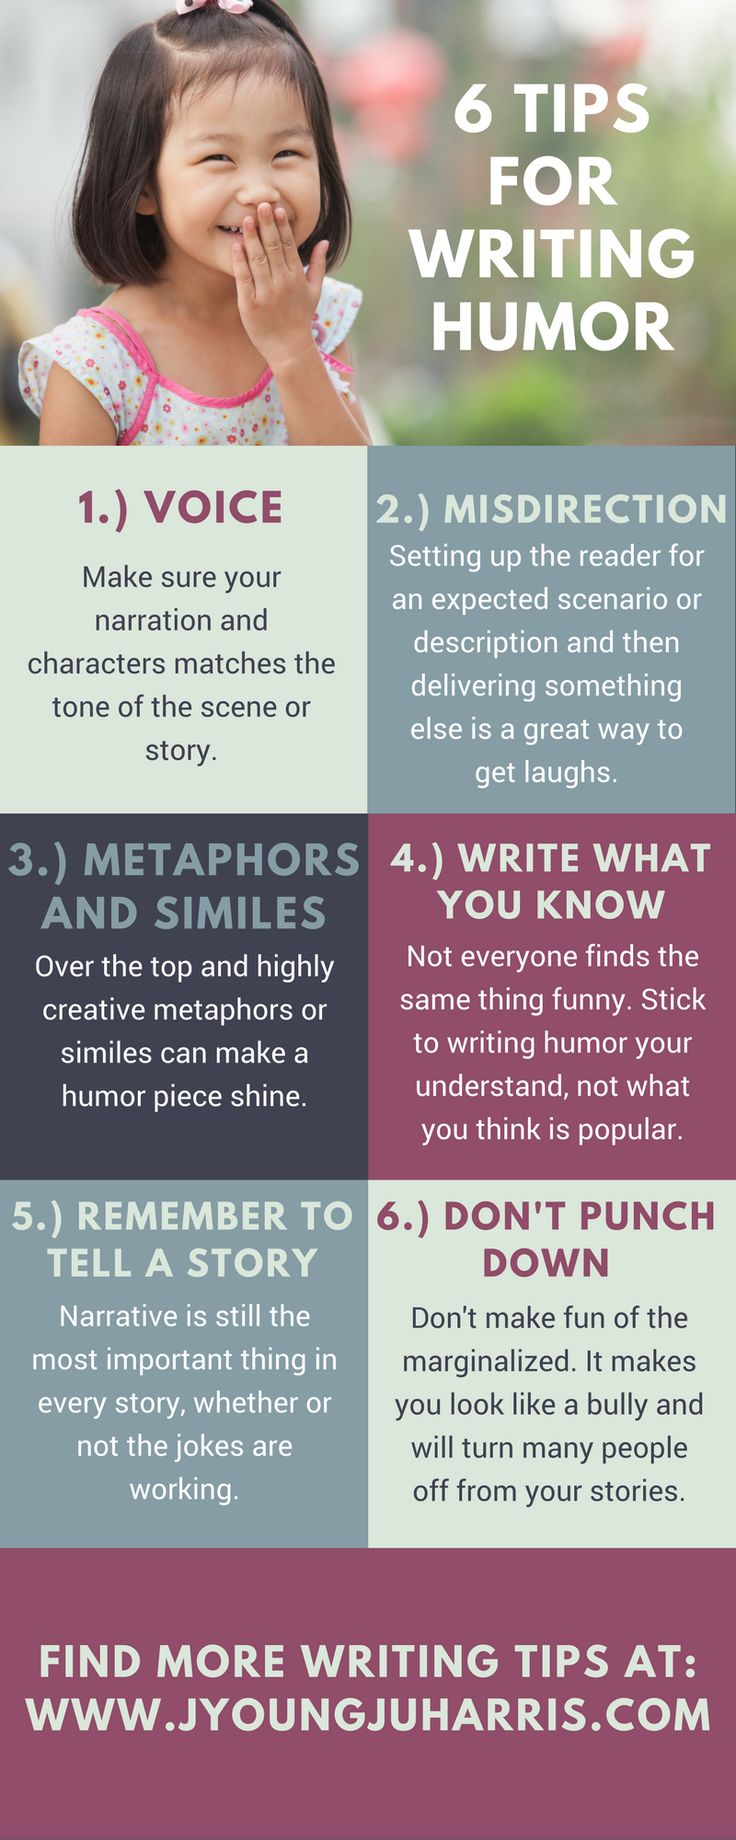 Some #writingtips for those who want to write more humor stories or scenes: https://jyoungjuharris.com/2016/11/30/6-tips-for-writing-humor/